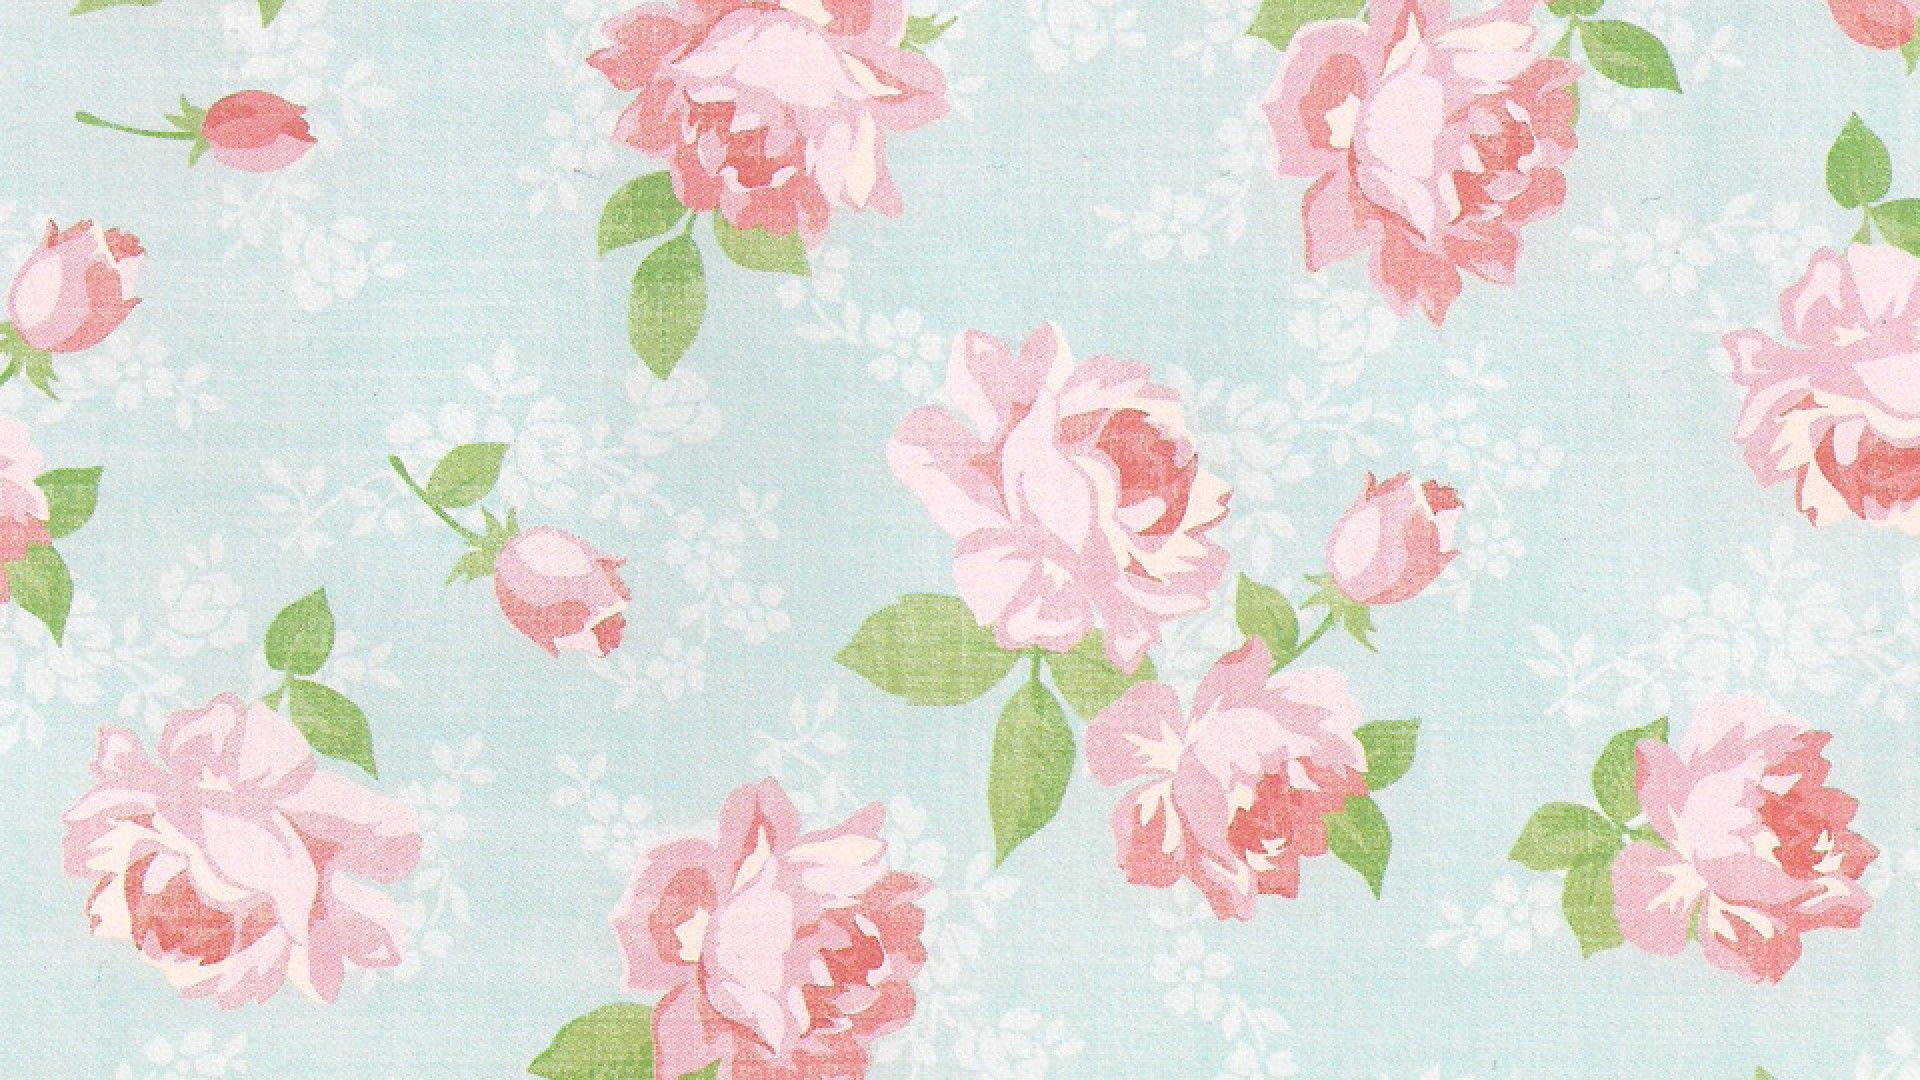 Floral Wallpaper Full HD INy